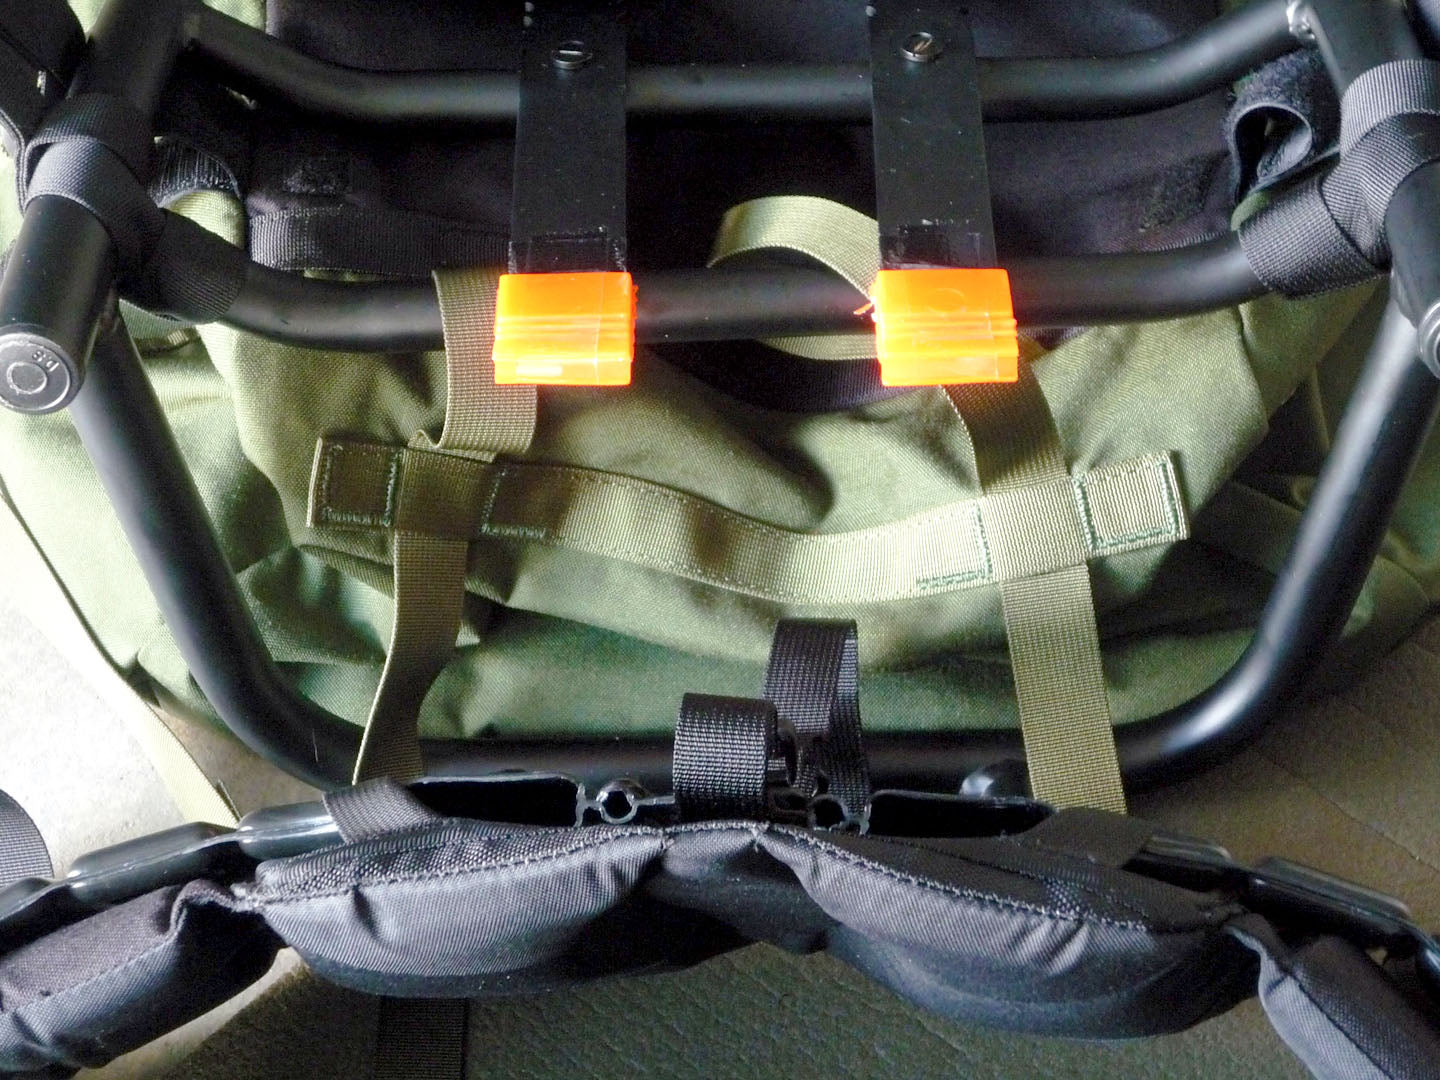 Elastromeric Shock Absorbers and their respective slots on the hip belt